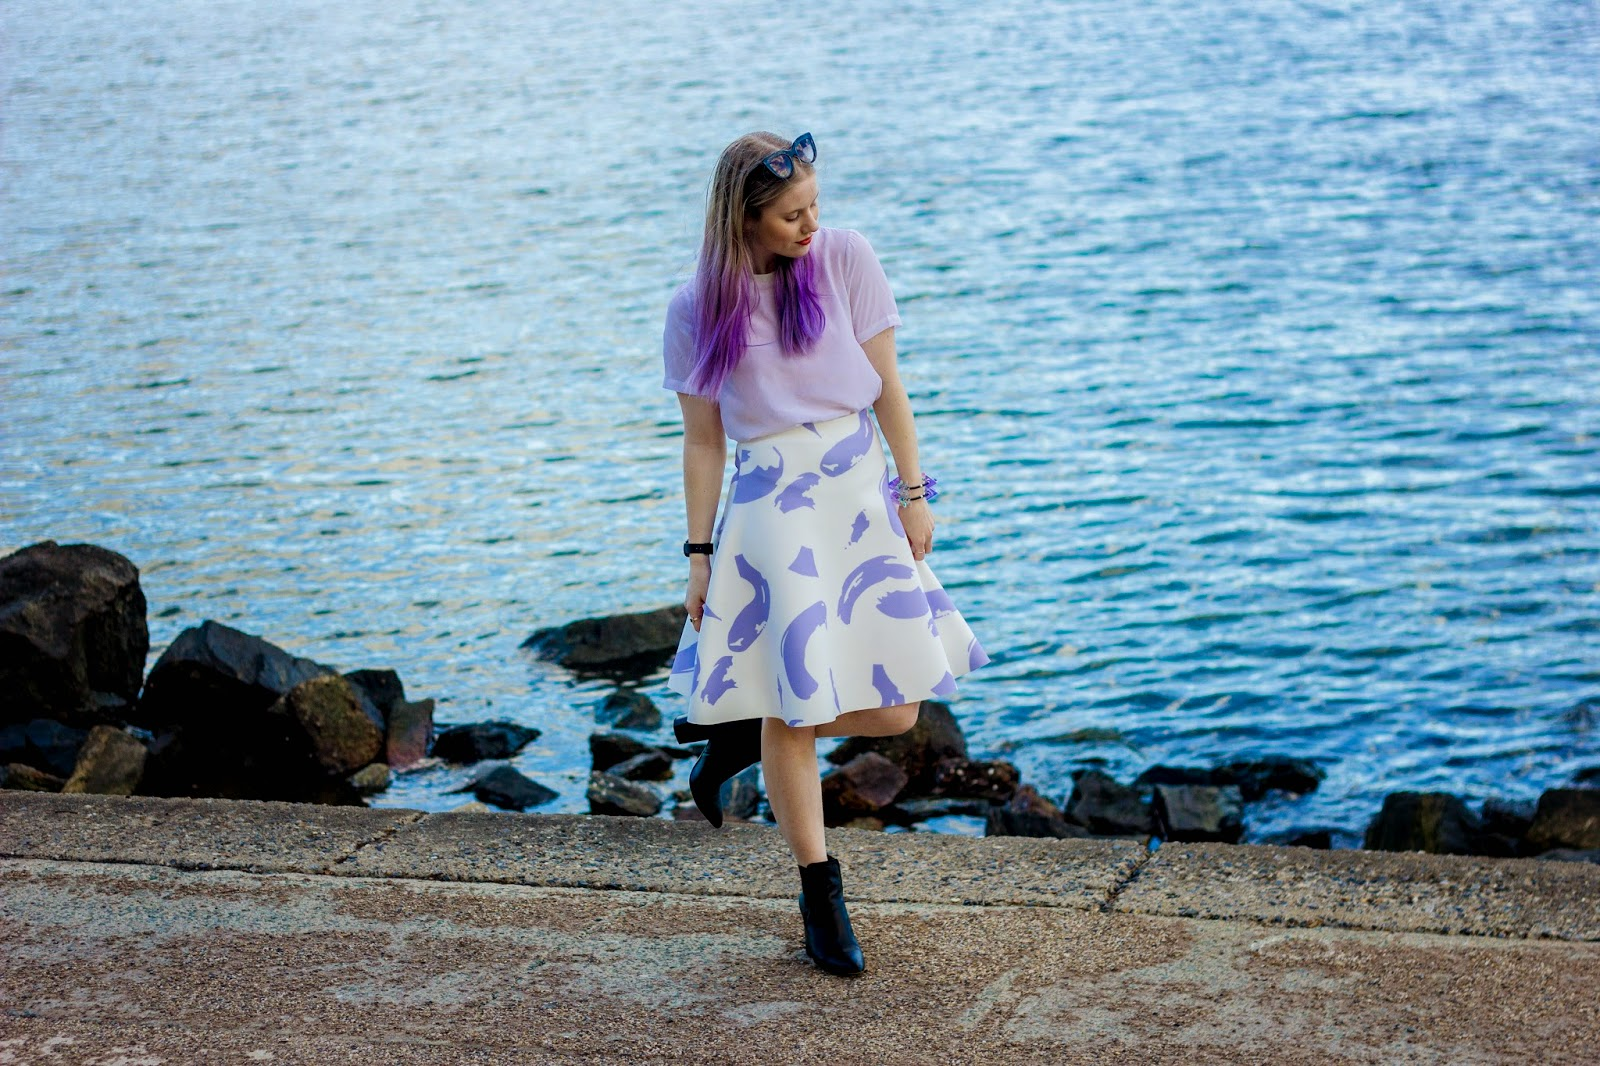 Pip O'Sullivan fashion blog, outsideiscolours, outside is colours blog, Pedestrian Blogster Awards, purple hair, dip dye, ombre hair, Ciara Clark, perspex jewellery, perspex spike bracelet, iridescent, Brisbane fashion blogger, Sheike, Celine paint strokes skirt, Sheike lilac paint strokes skirt, Glassons silk t-shirt, ASOS leather boots, black pointed toe heeled boots,